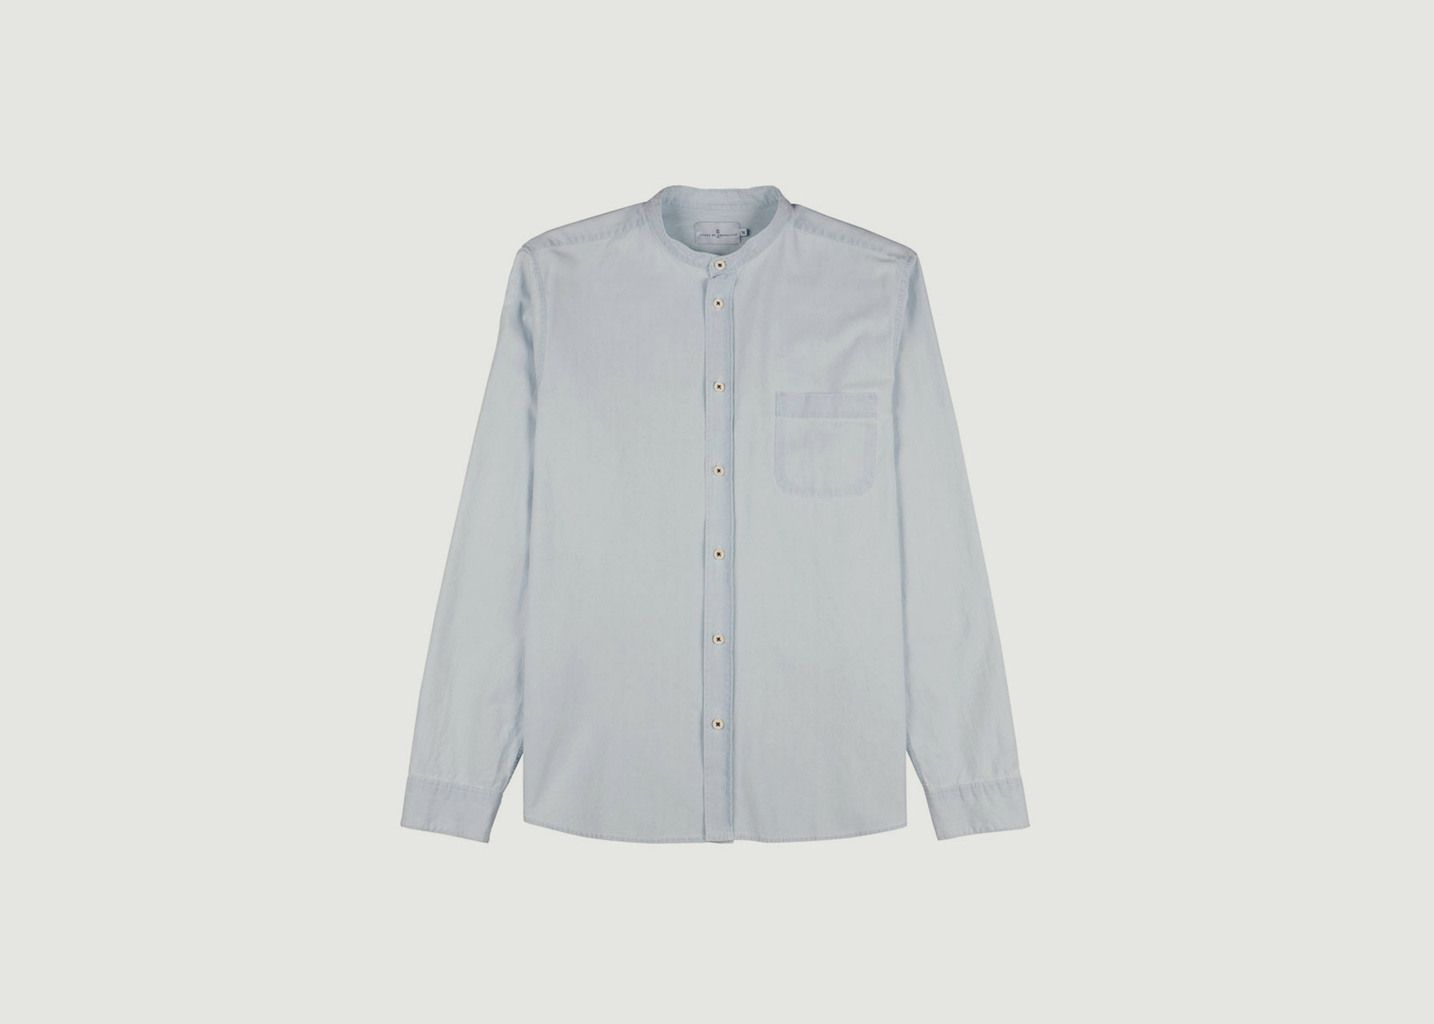 Chemise Chambray Grisbi - Cuisse de Grenouille